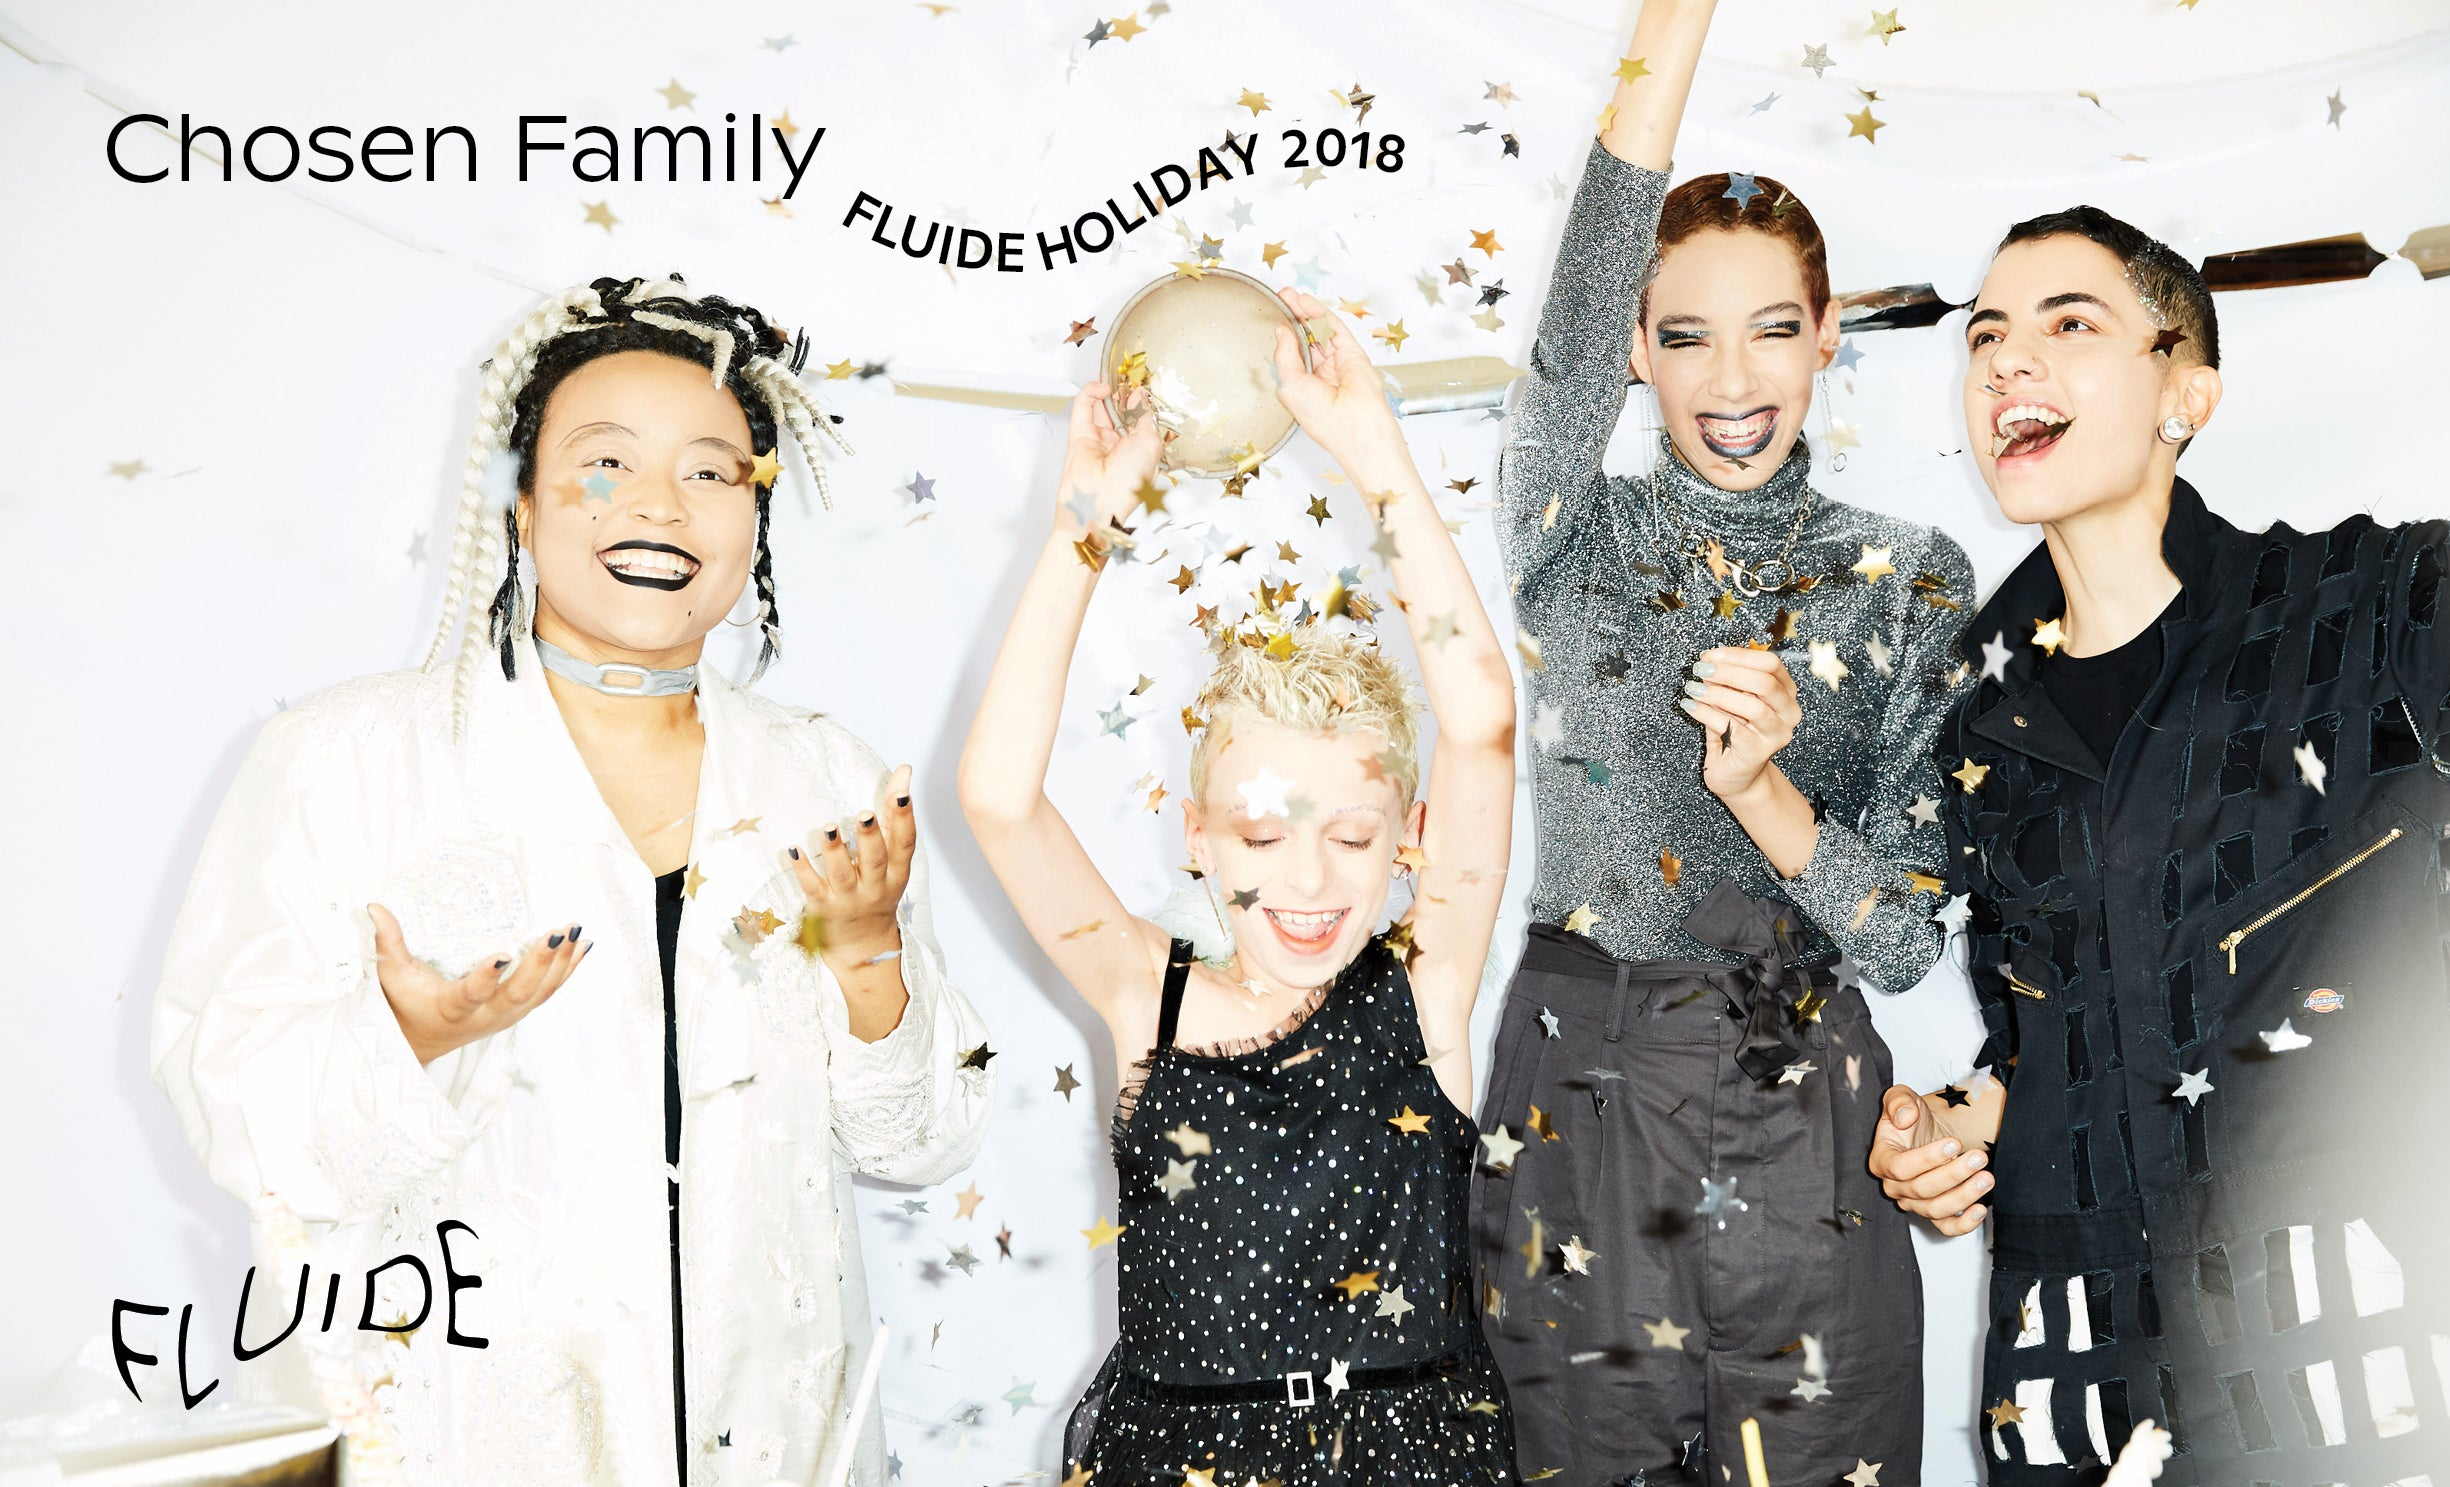 Chosen Family - we are Fluide Holiday 2018